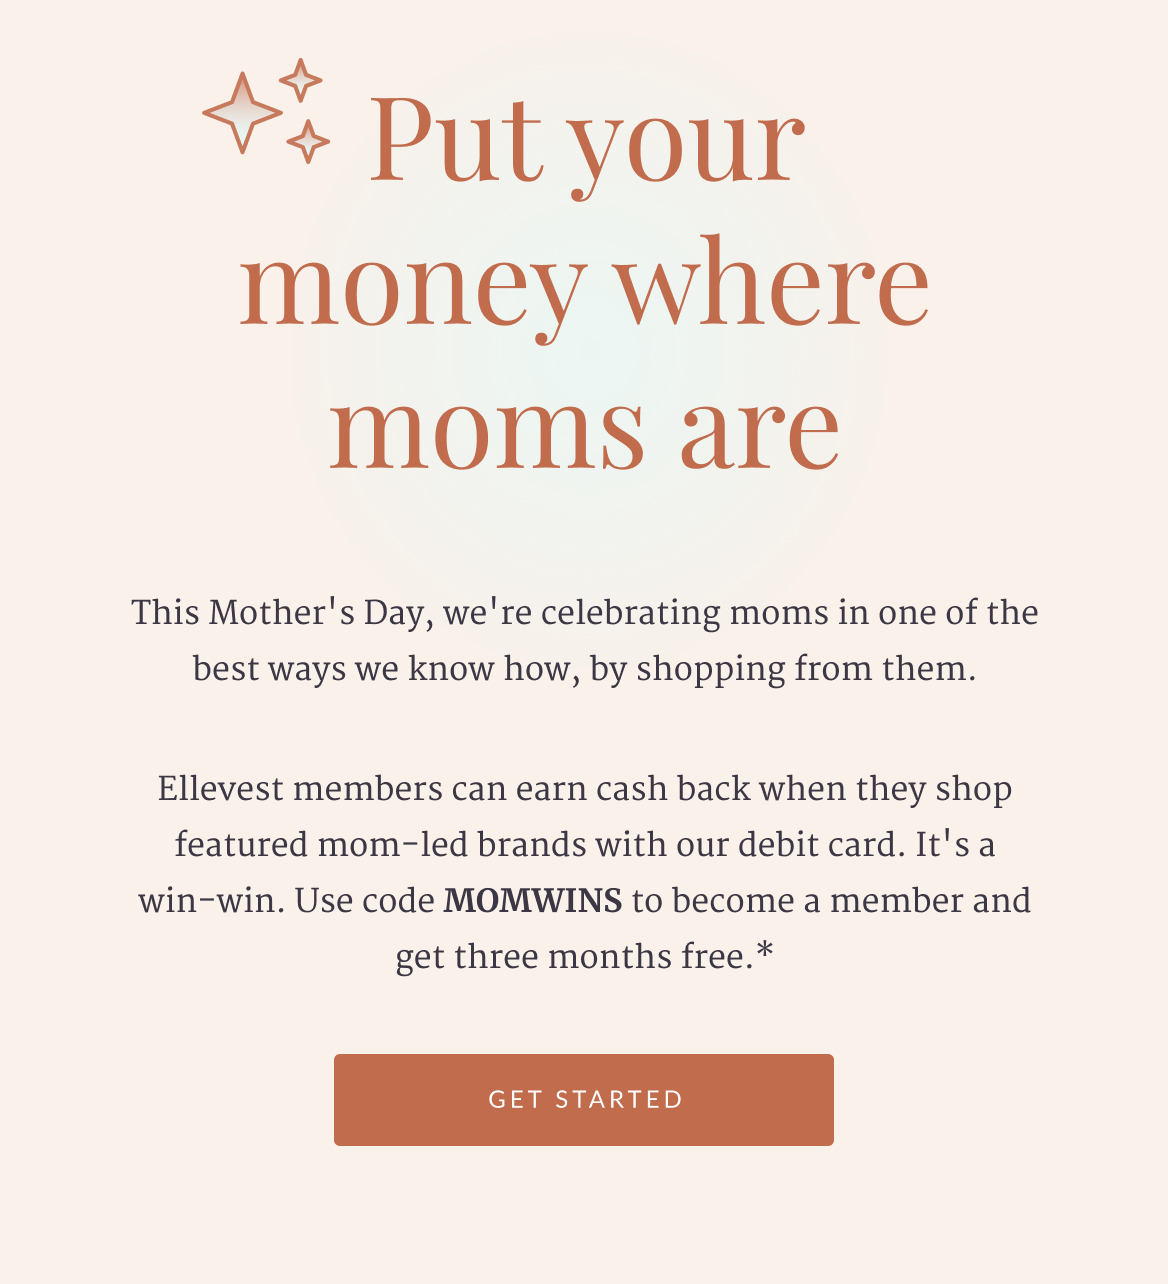 Put your money where moms are. This Mother's Day, we're celebrating moms in one of the best ways we know how, by shopping from them. Ellevest members can earn cash back when they shop featured mom-led brands with our debit card. It's a win-win. Use code MOMWINS to become a member and get three months free.* Get Started.